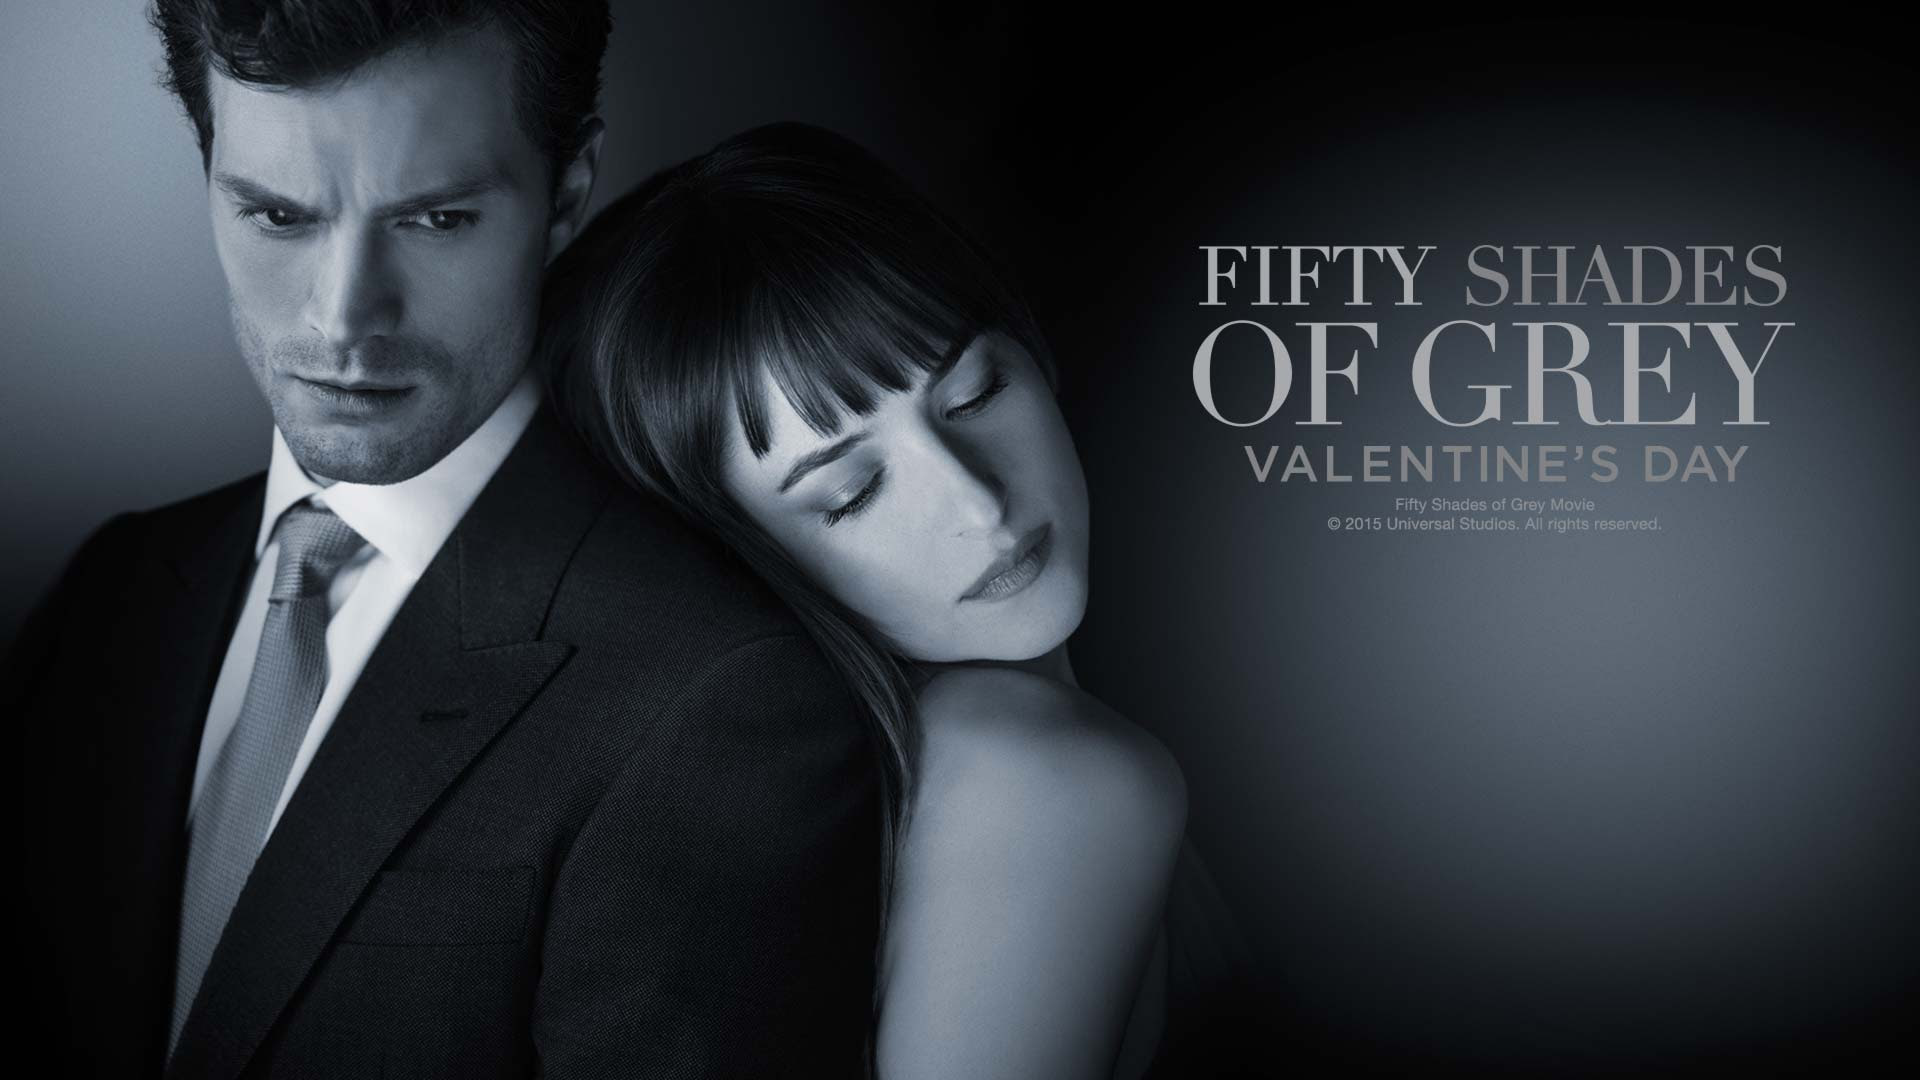 Fifty Shades Of Grey Wallpaper 1920x1080 69802